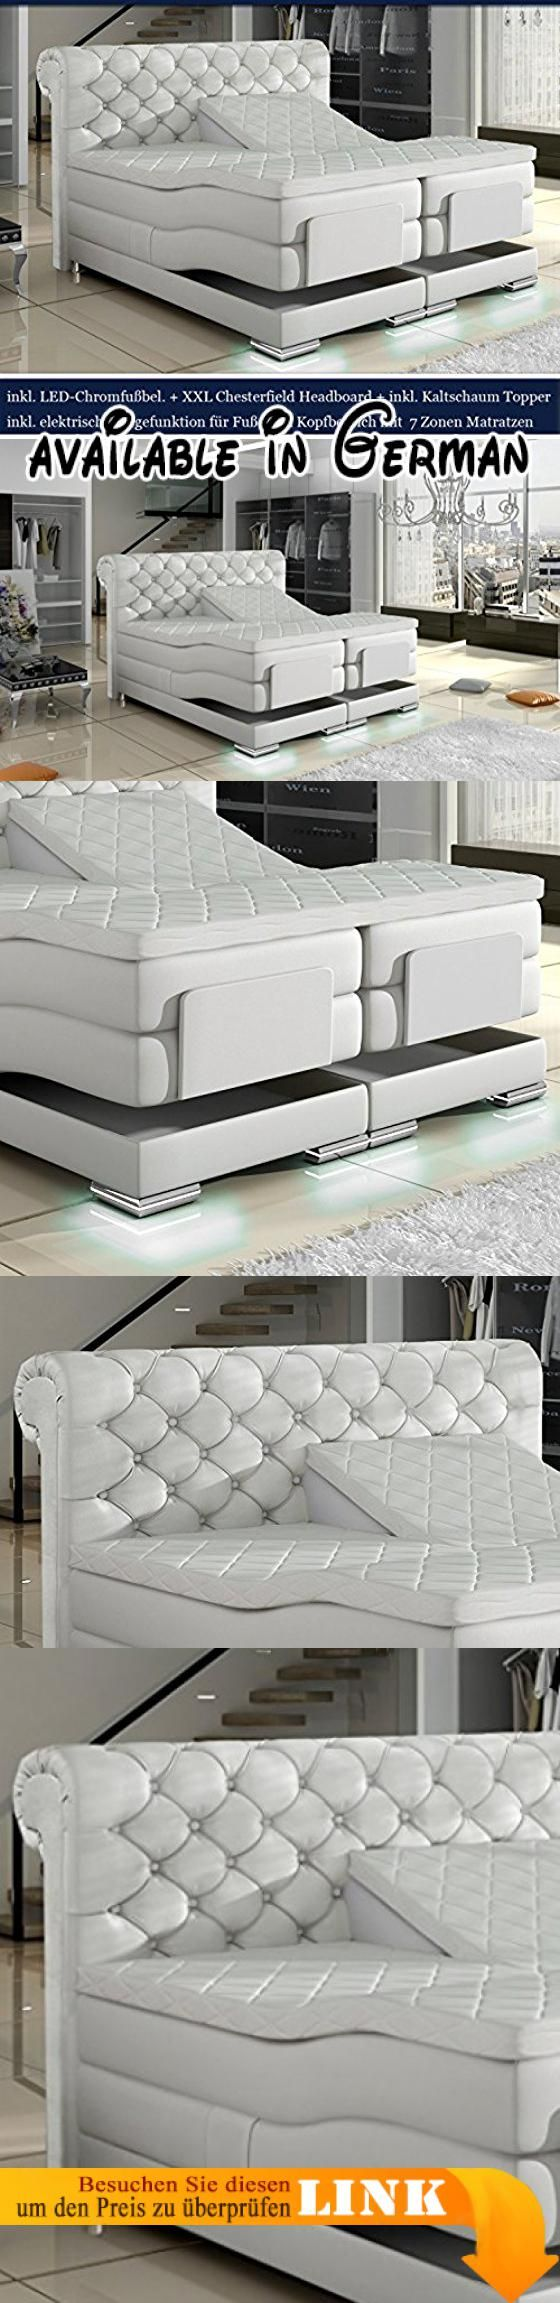 B01IRD6JLK : XXL MANCHESTER Boxspringbett mit Elektrischer Liegefunktion Designer Boxspring Bett Chesterfield LED WEISS CHESTERFIELD DESIGN (180x200cm Weiss Kunstleder).